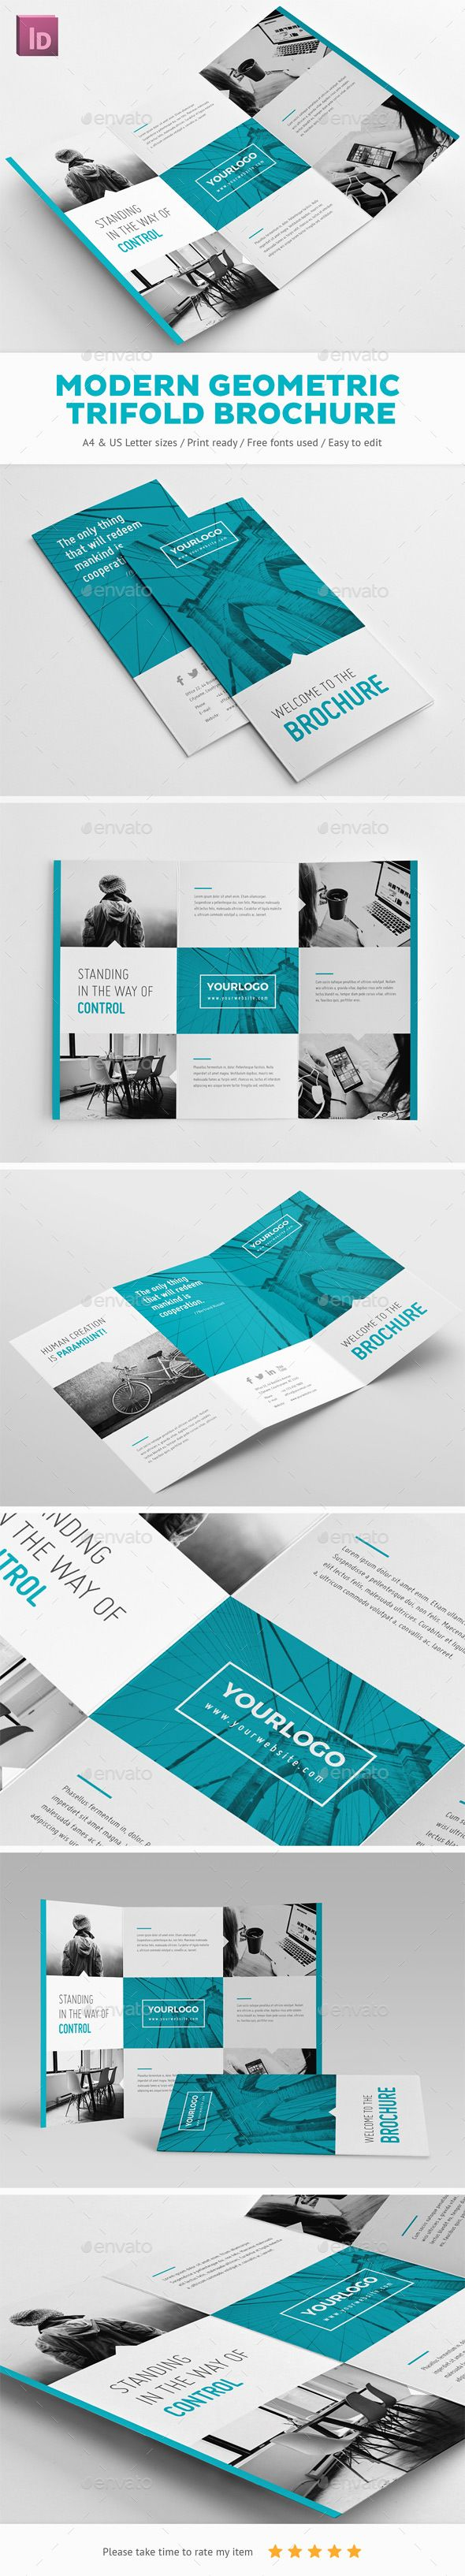 Modern Geometric Trifold Brochure | Folletos, Gaby y Diseño editorial